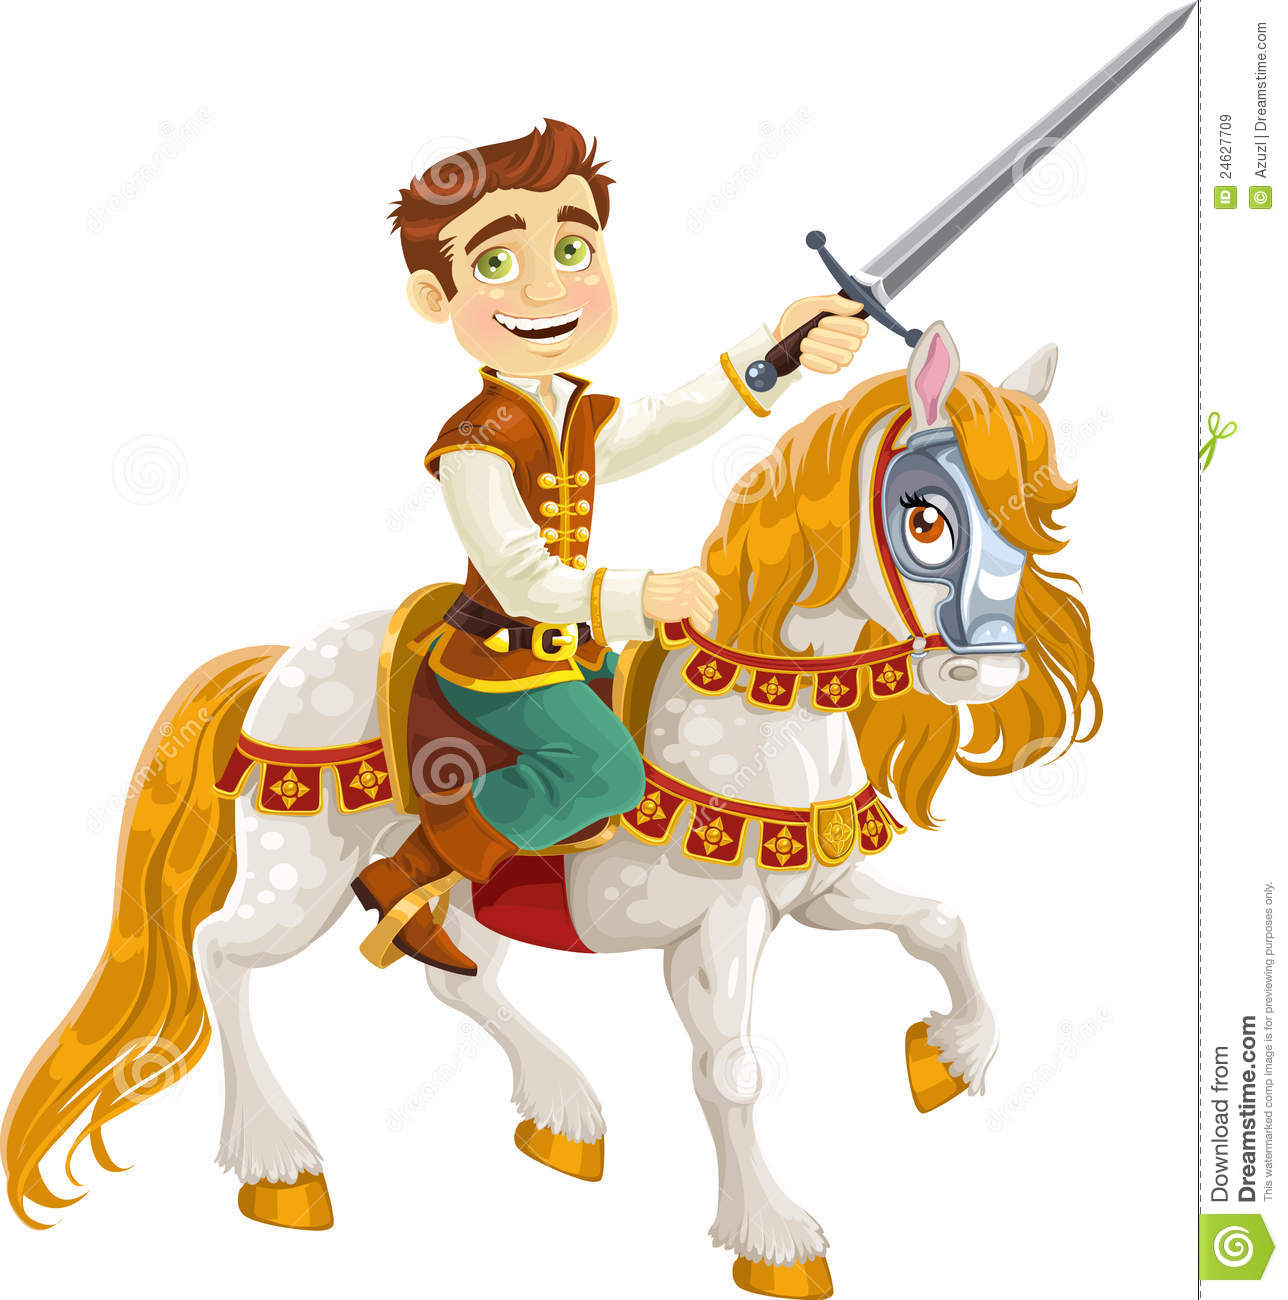 Prince Charming On A White Horse Royalty Free Stock Images   Image